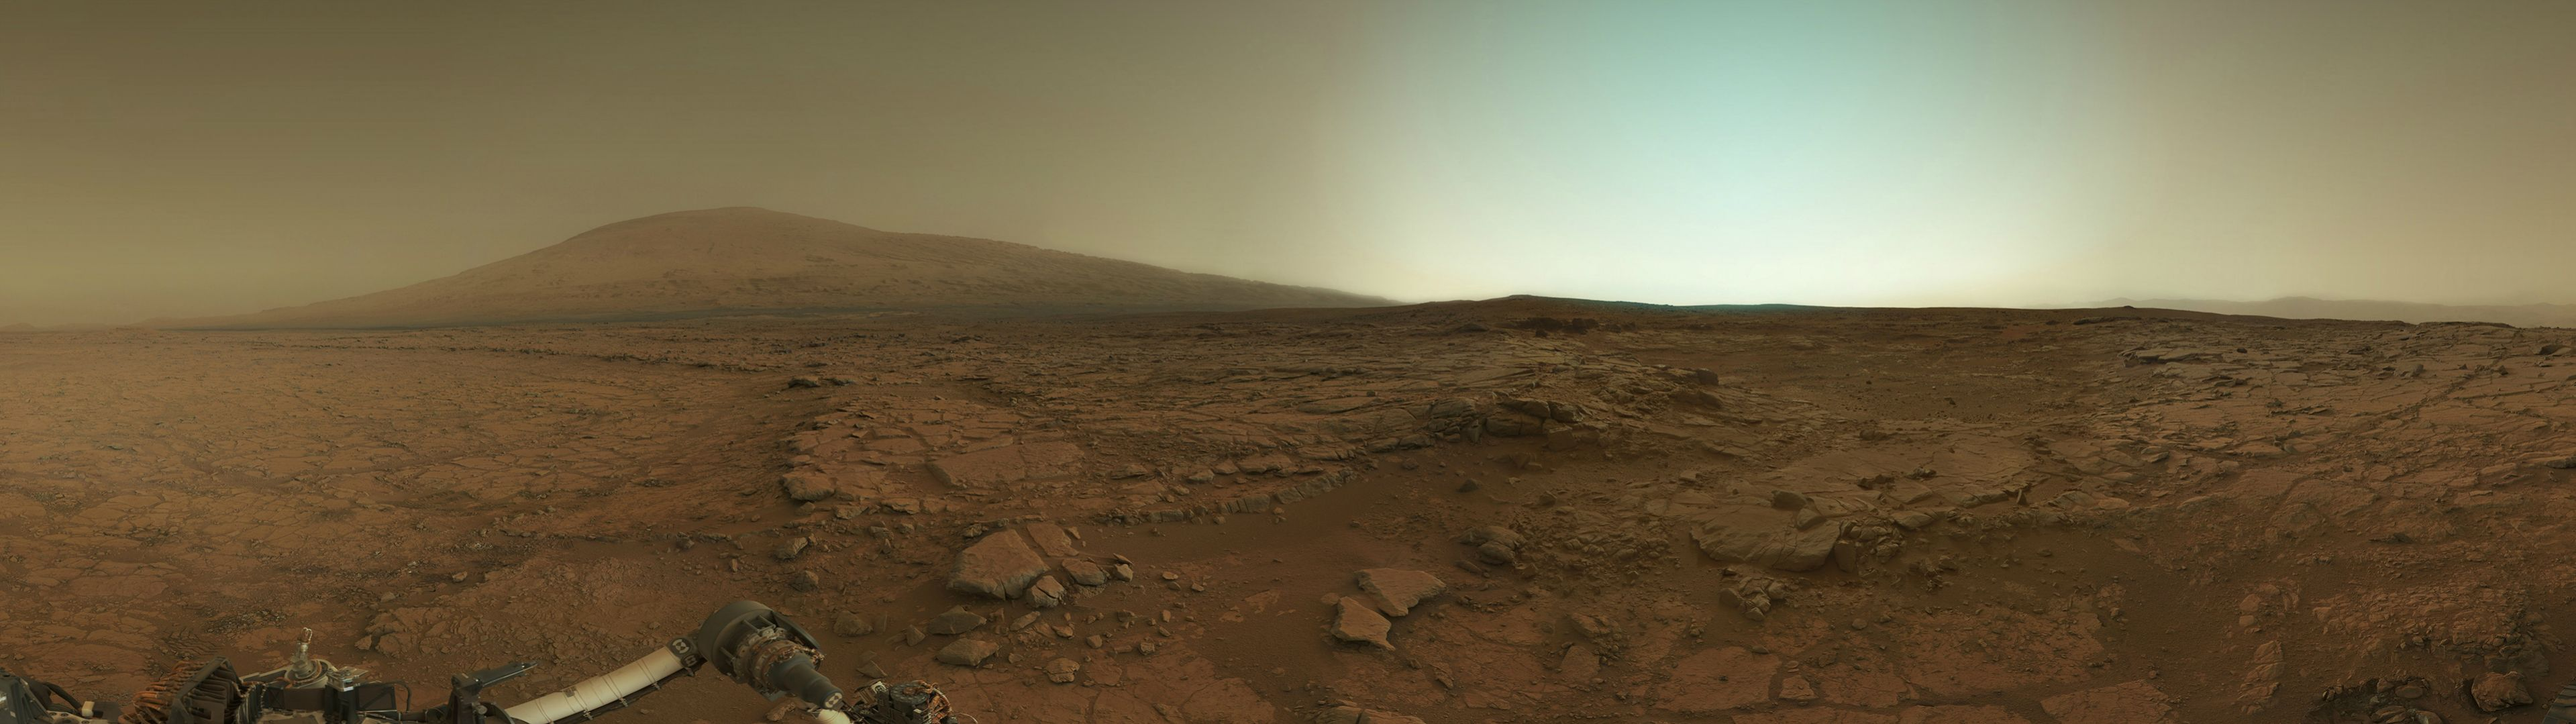 Mars-Curiosity-Panorama-Dual-Monitor-x-1080-wallpaper-wp38011756